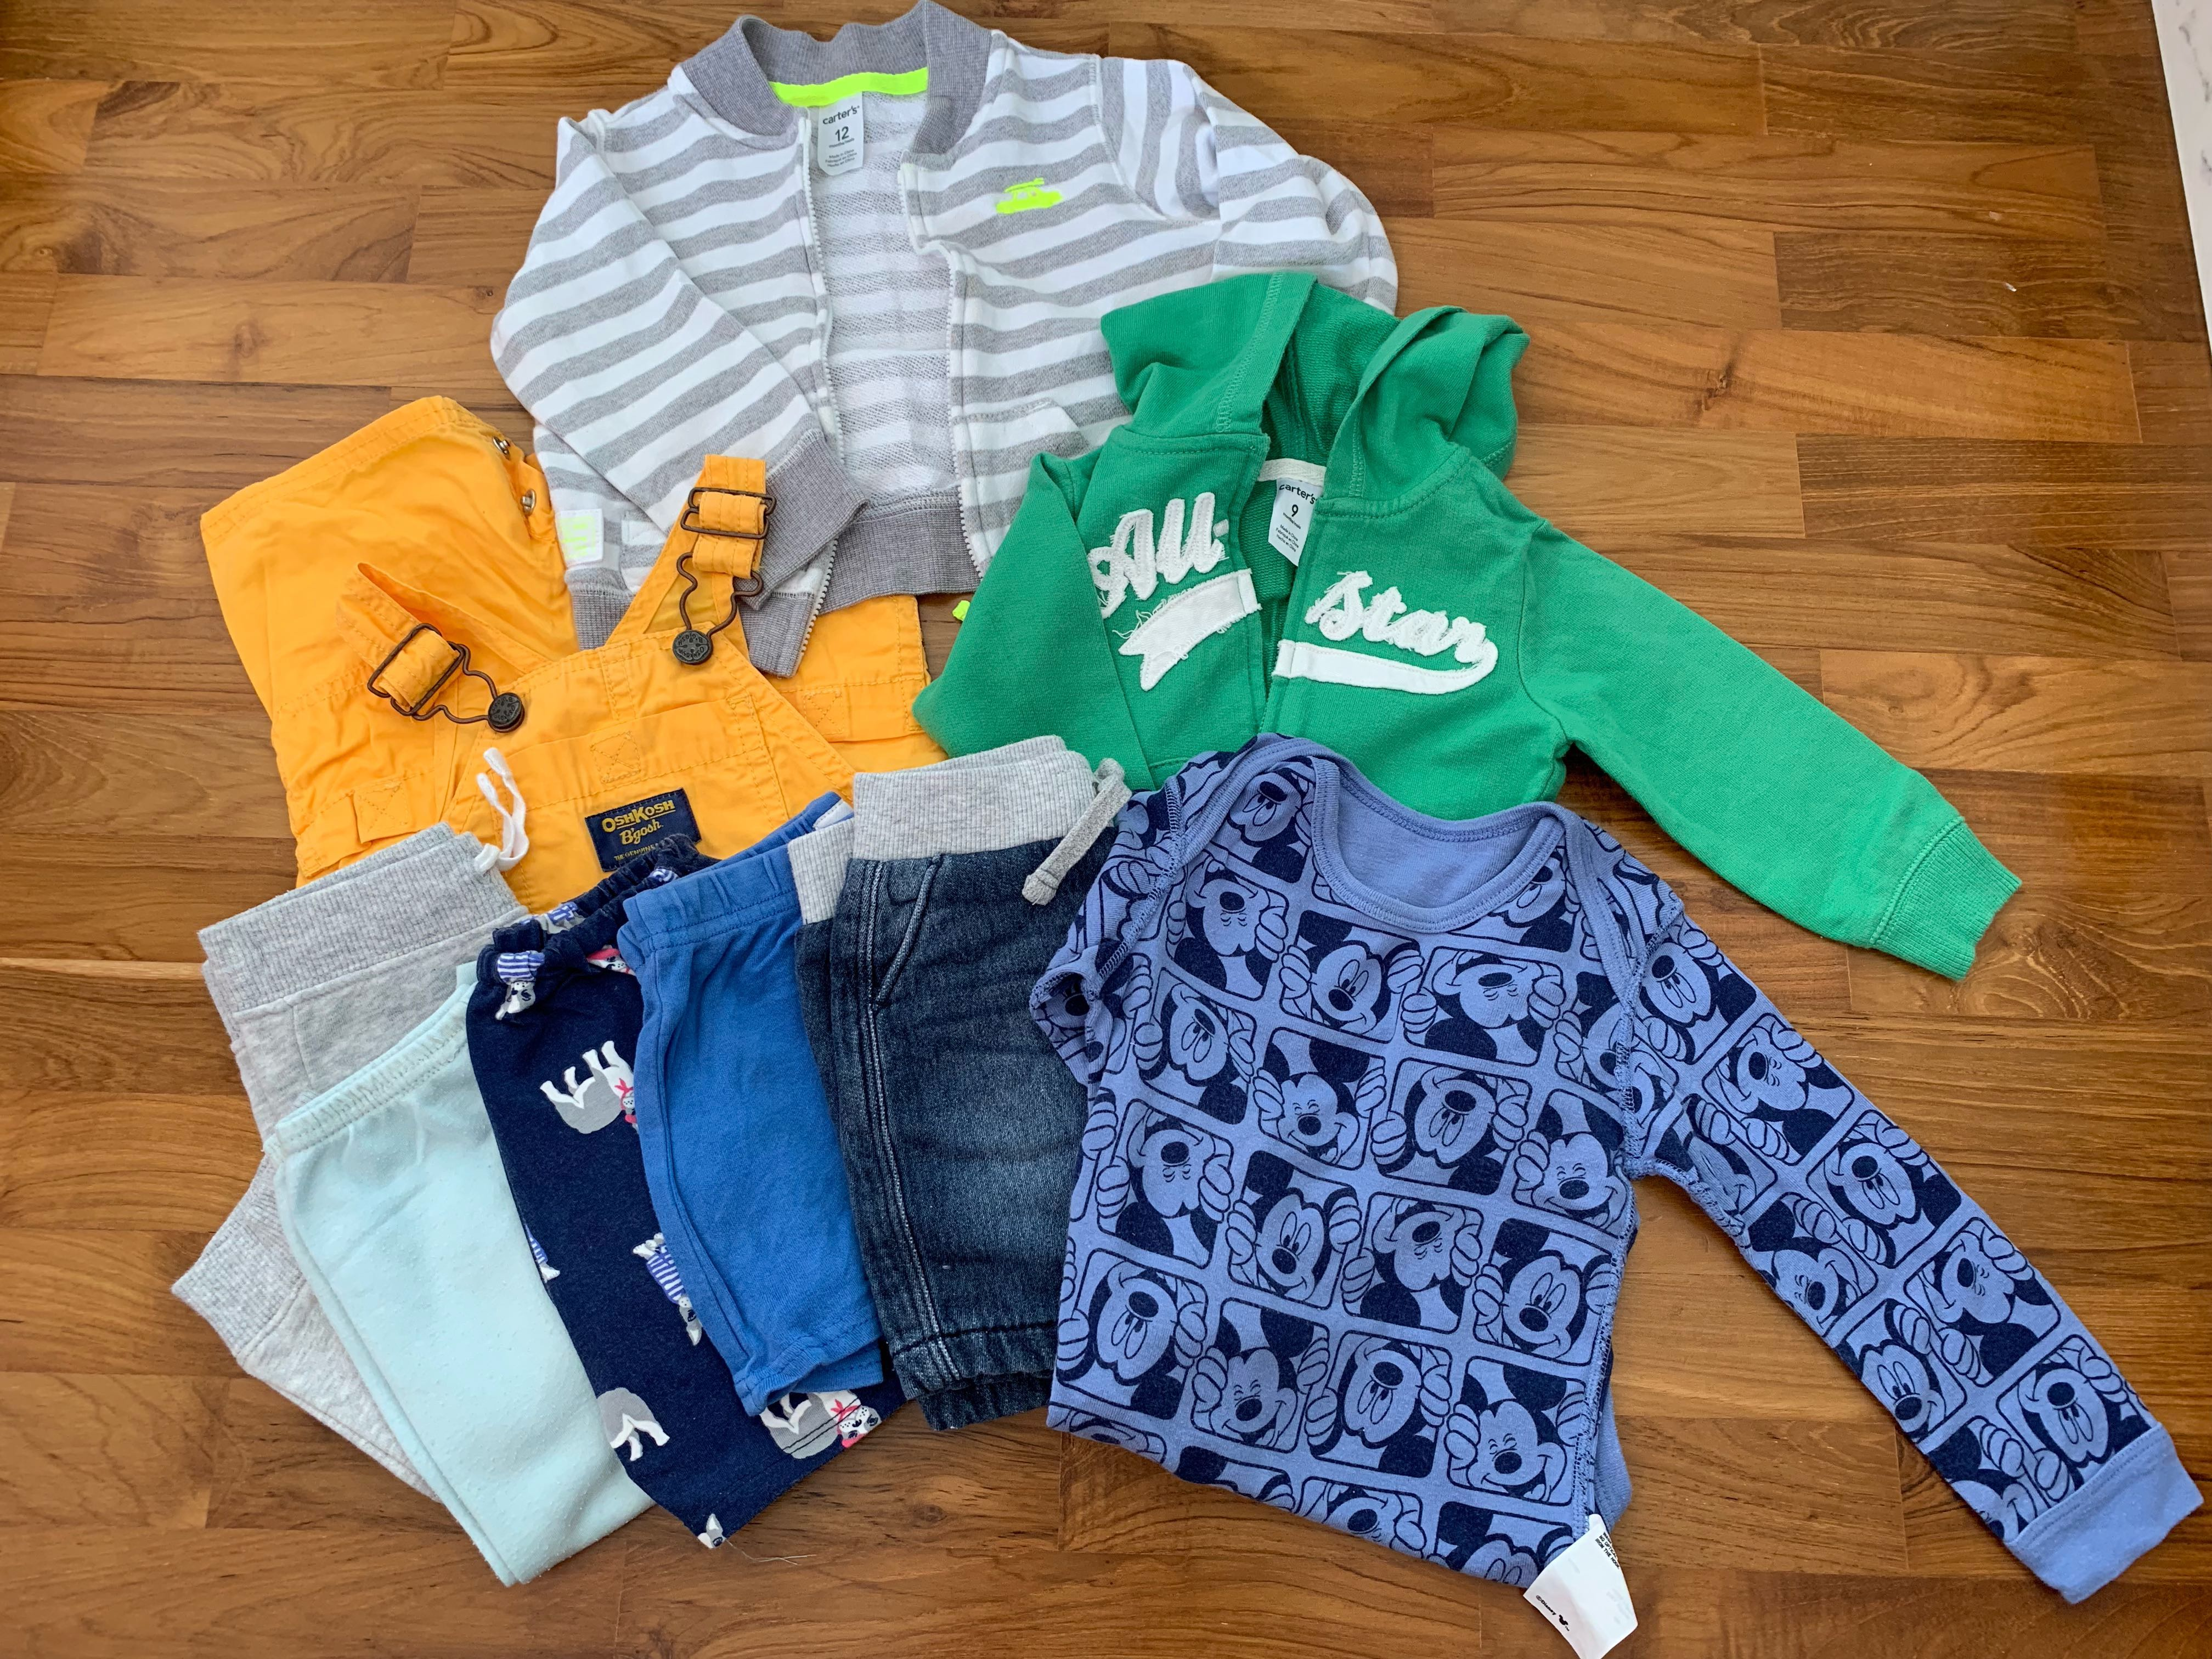 dbc8a11c08f6 Sale ! / Baby Boy clothes 12 months / Jackets x 2, pants x 5 / clearance /  Disney / Oshkosh, Babies & Kids, Boys' Apparel, 1 to 3 Years on Carousell